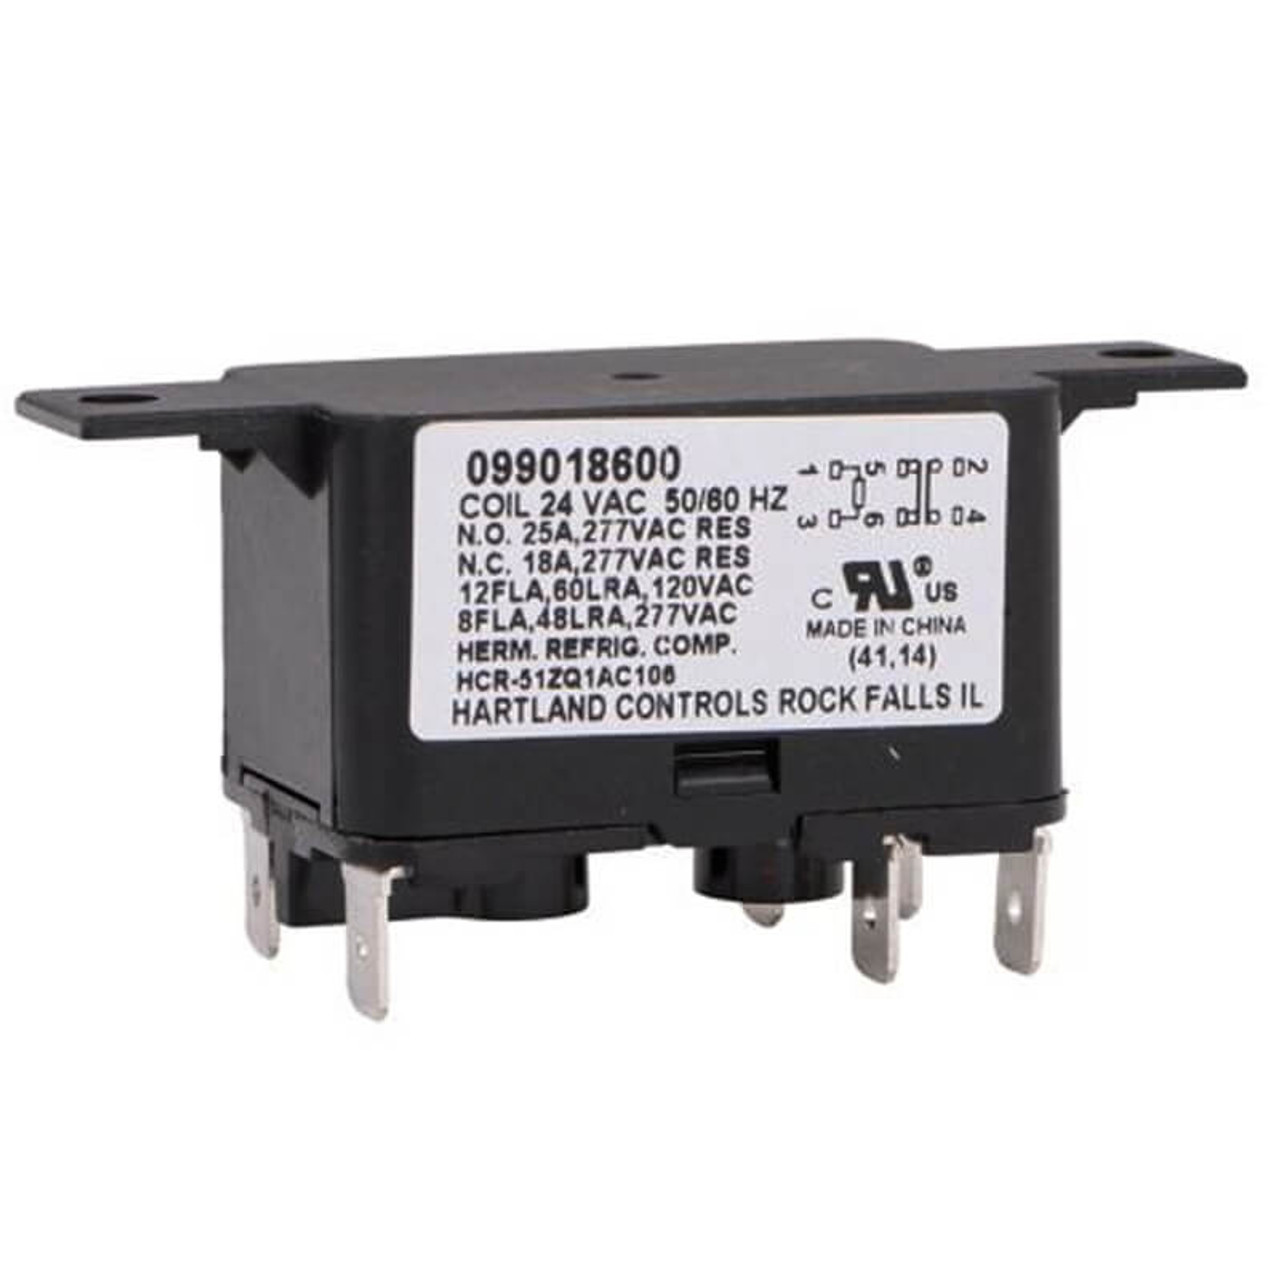 13W13 - Fan Blower Relay on